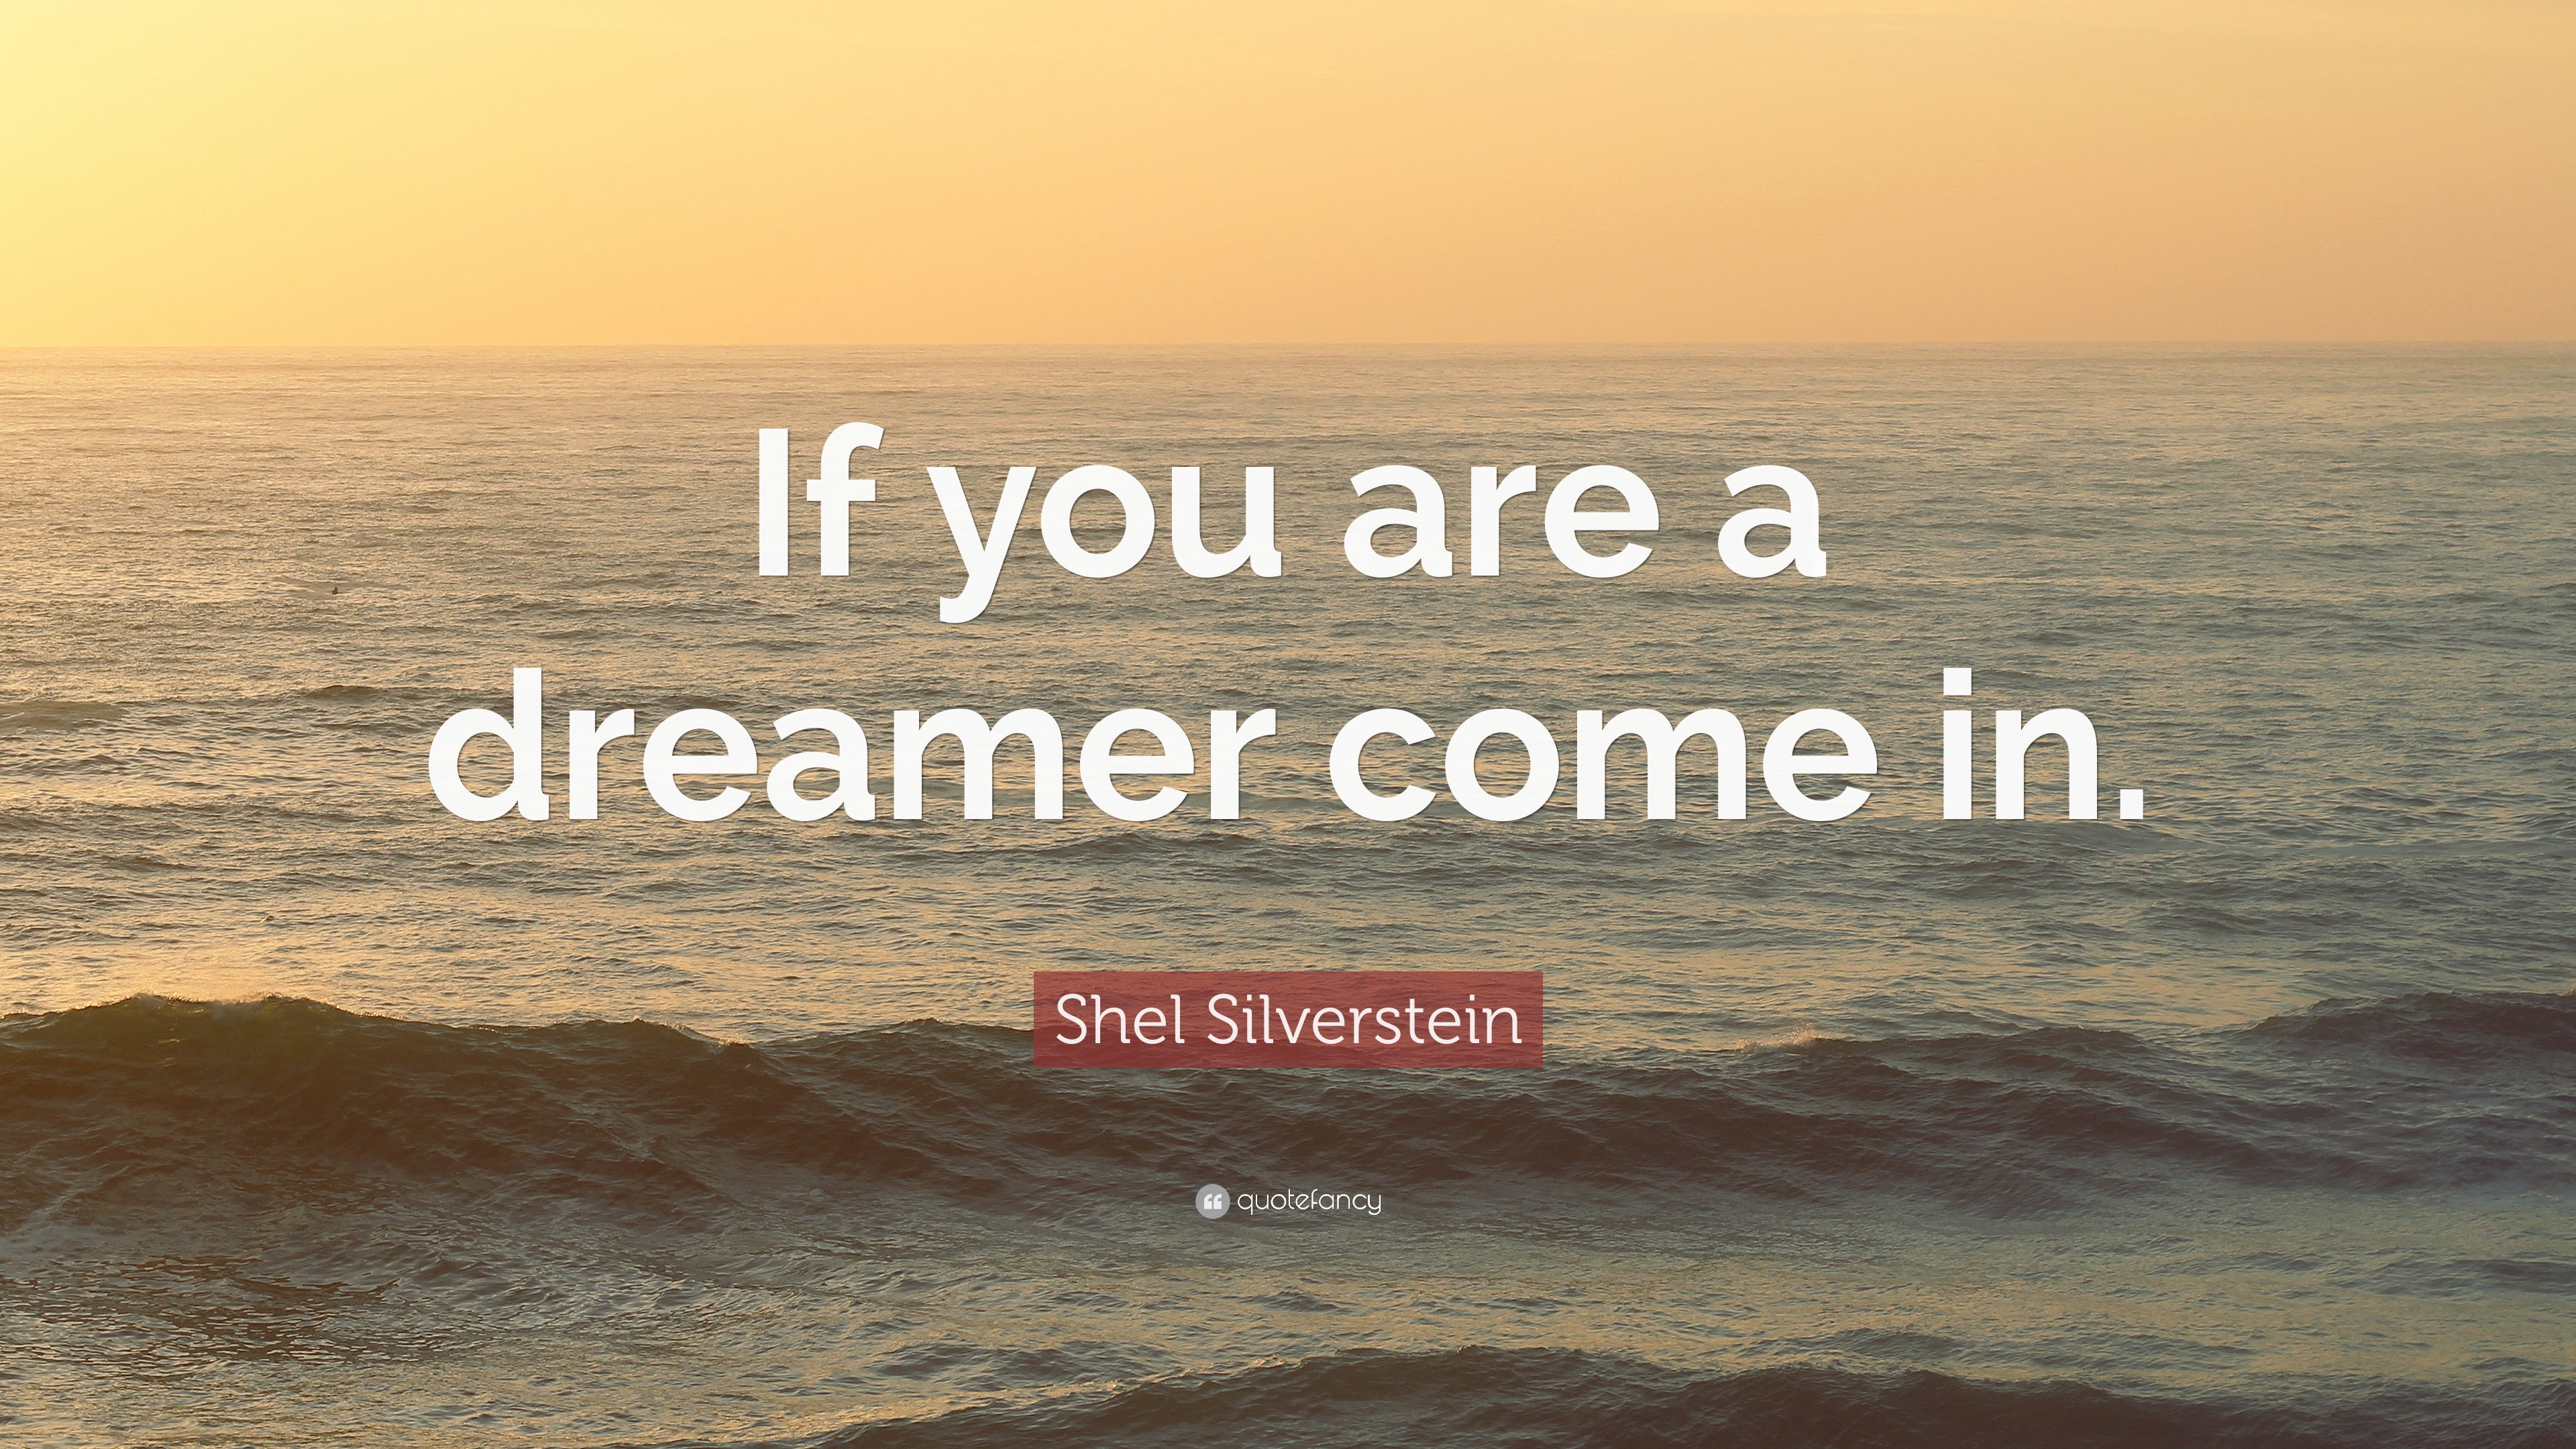 """Shel Silverstein Quotes About Education: Shel Silverstein Quote: """"If You Are A Dreamer Come In"""